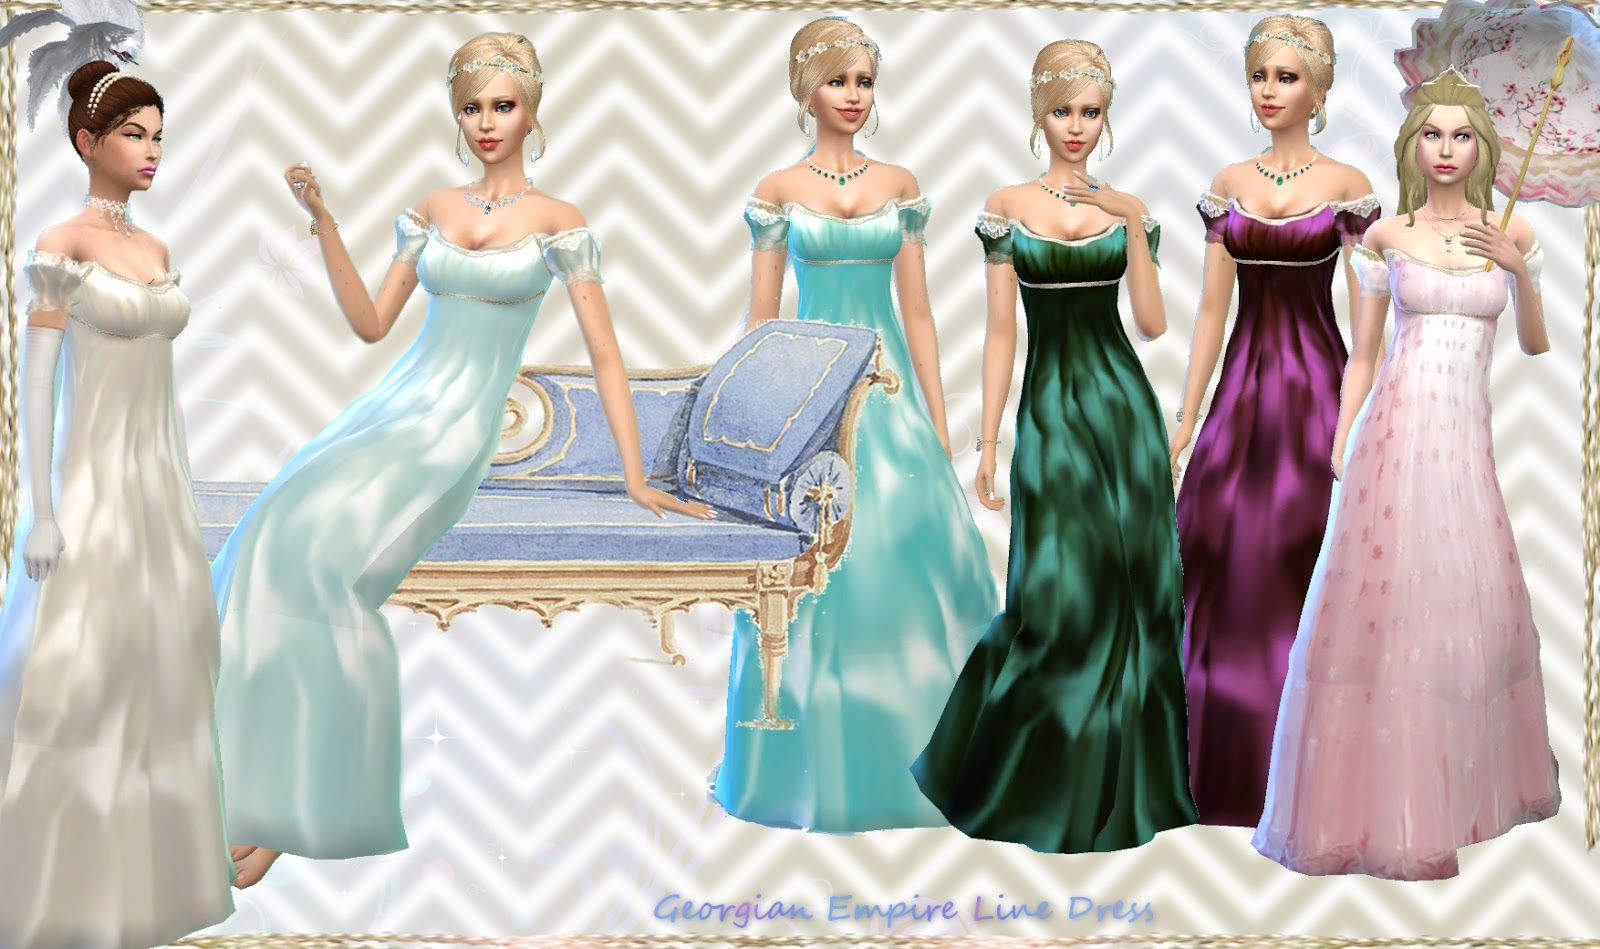 A Set Of 19 Dress Options From The Georgian Neoclassic 1800s Period 19th Century All In One File Http Mythicaldr Sims 4 Wedding Dress Sims 4 Dresses Sims 4